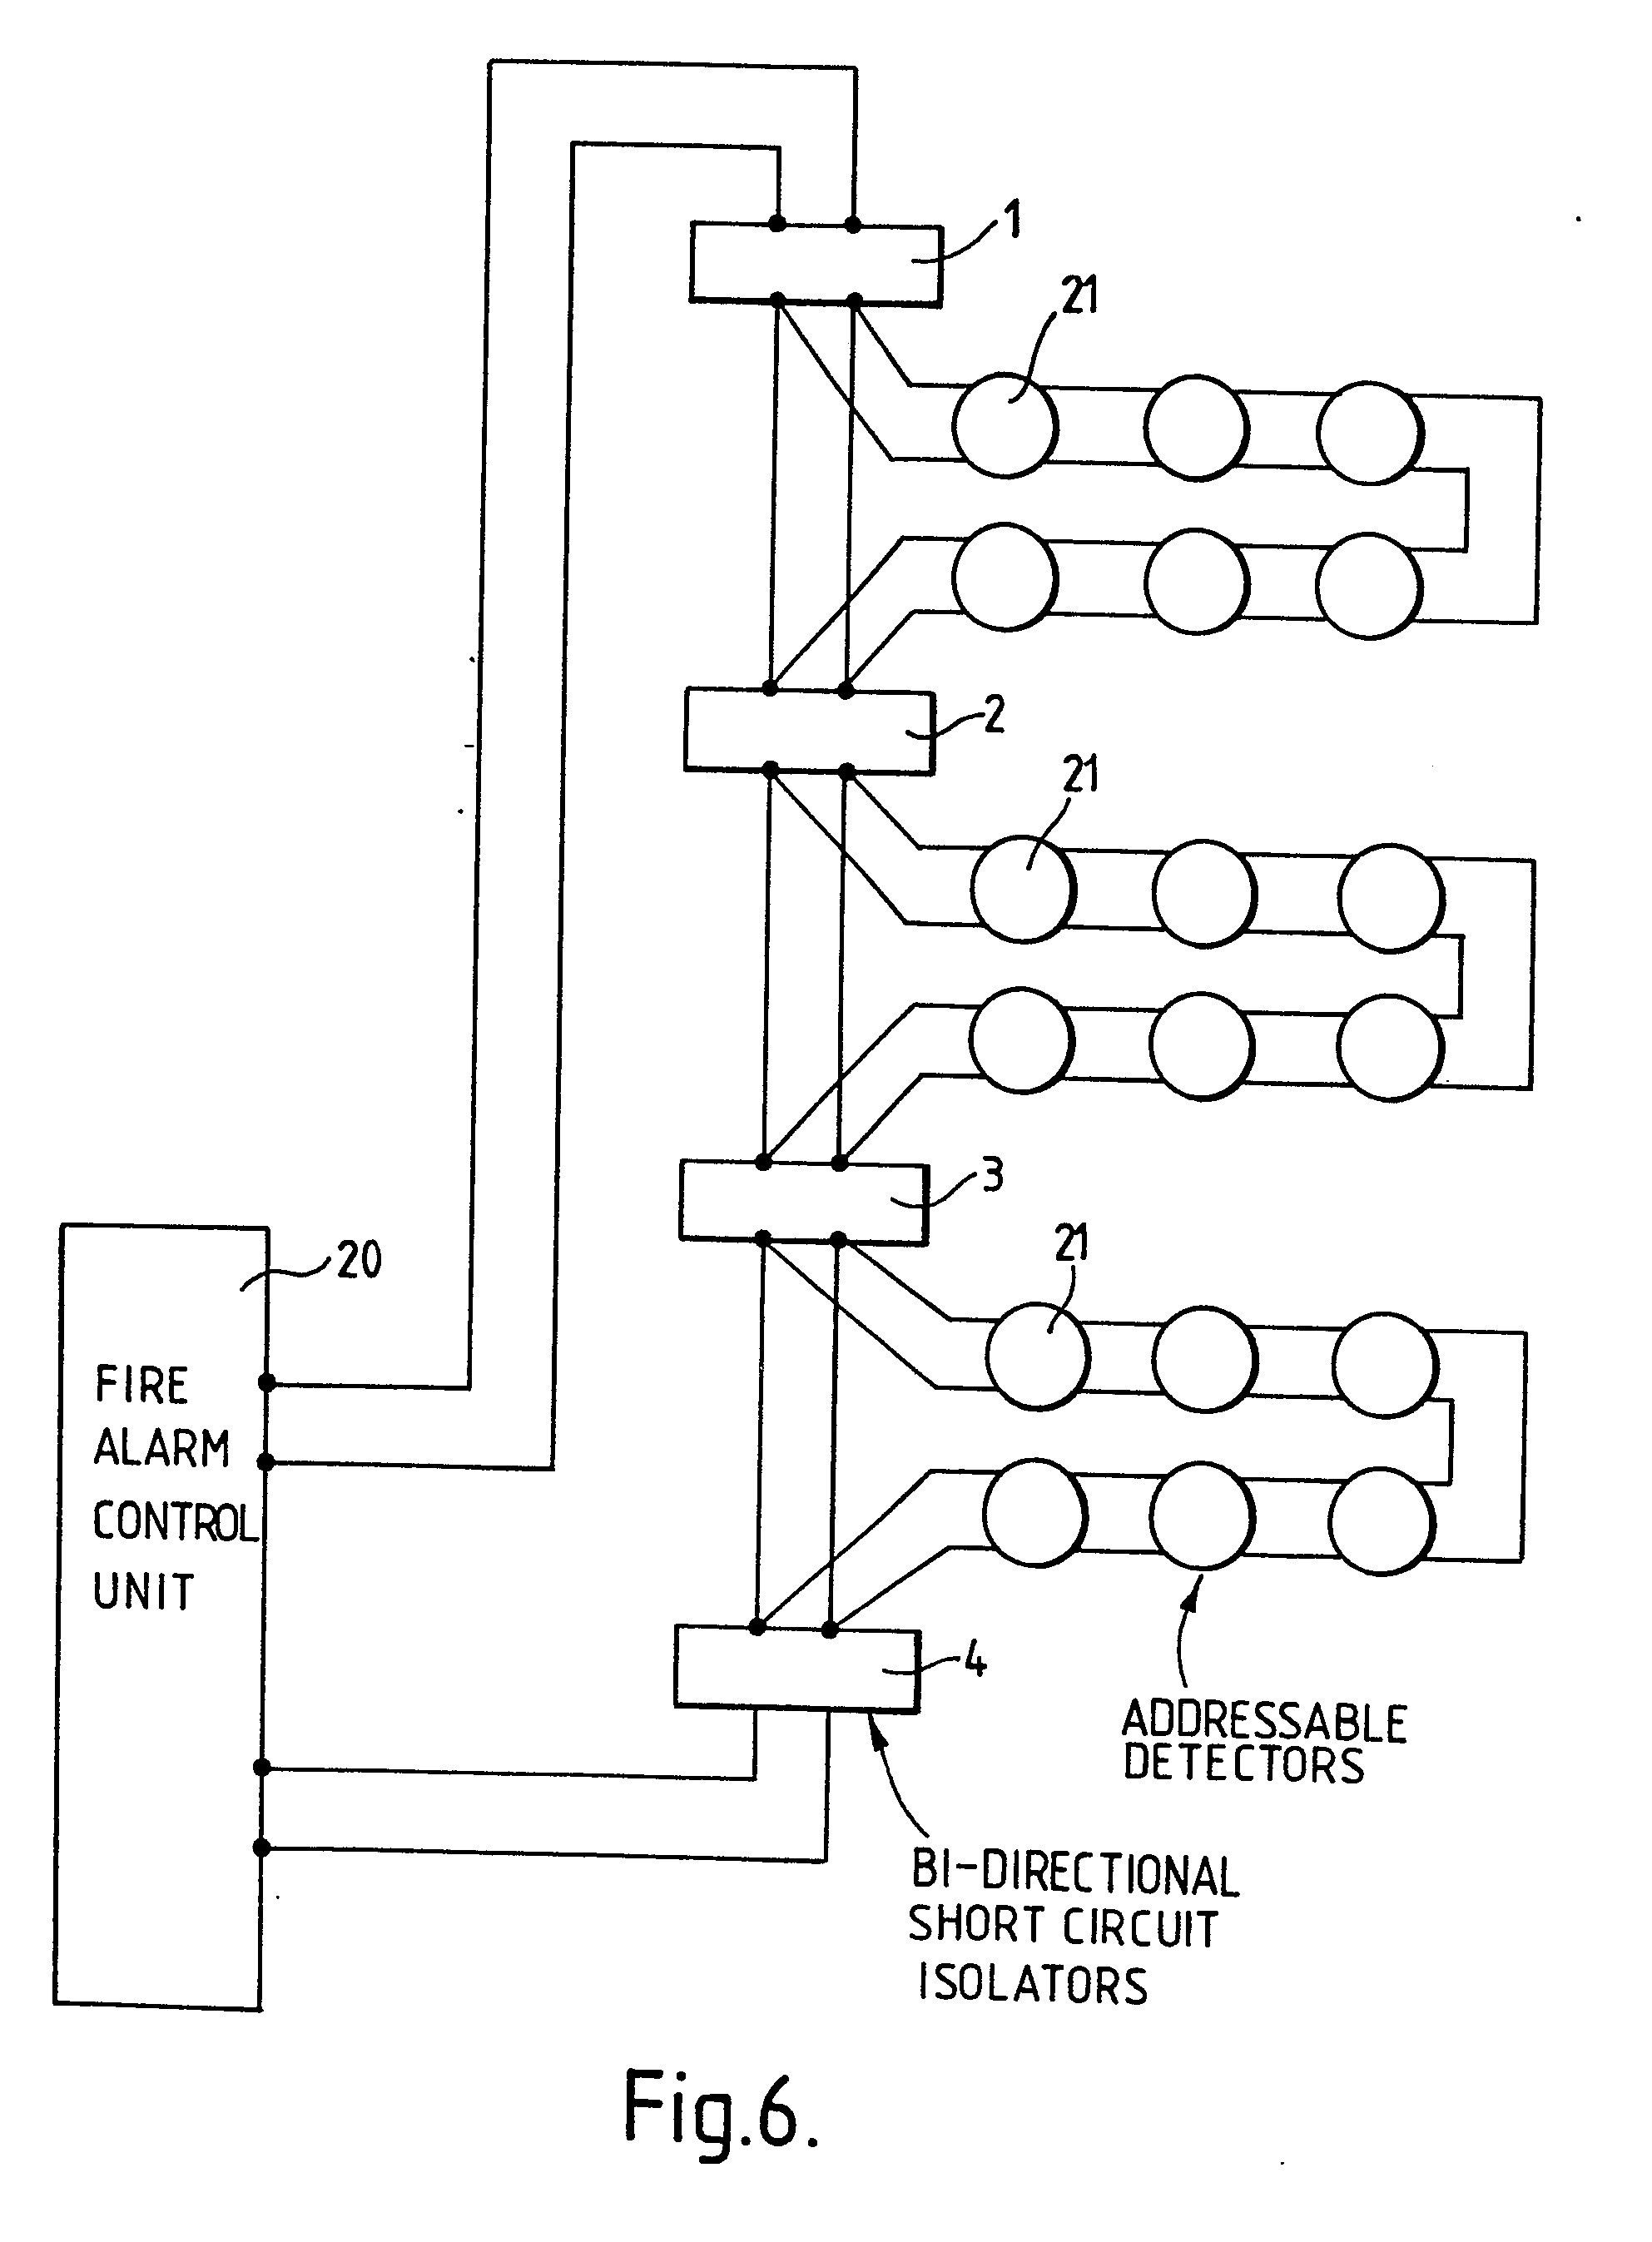 New Fire Alarm System Wiring Diagram Pdf Fire Alarm System